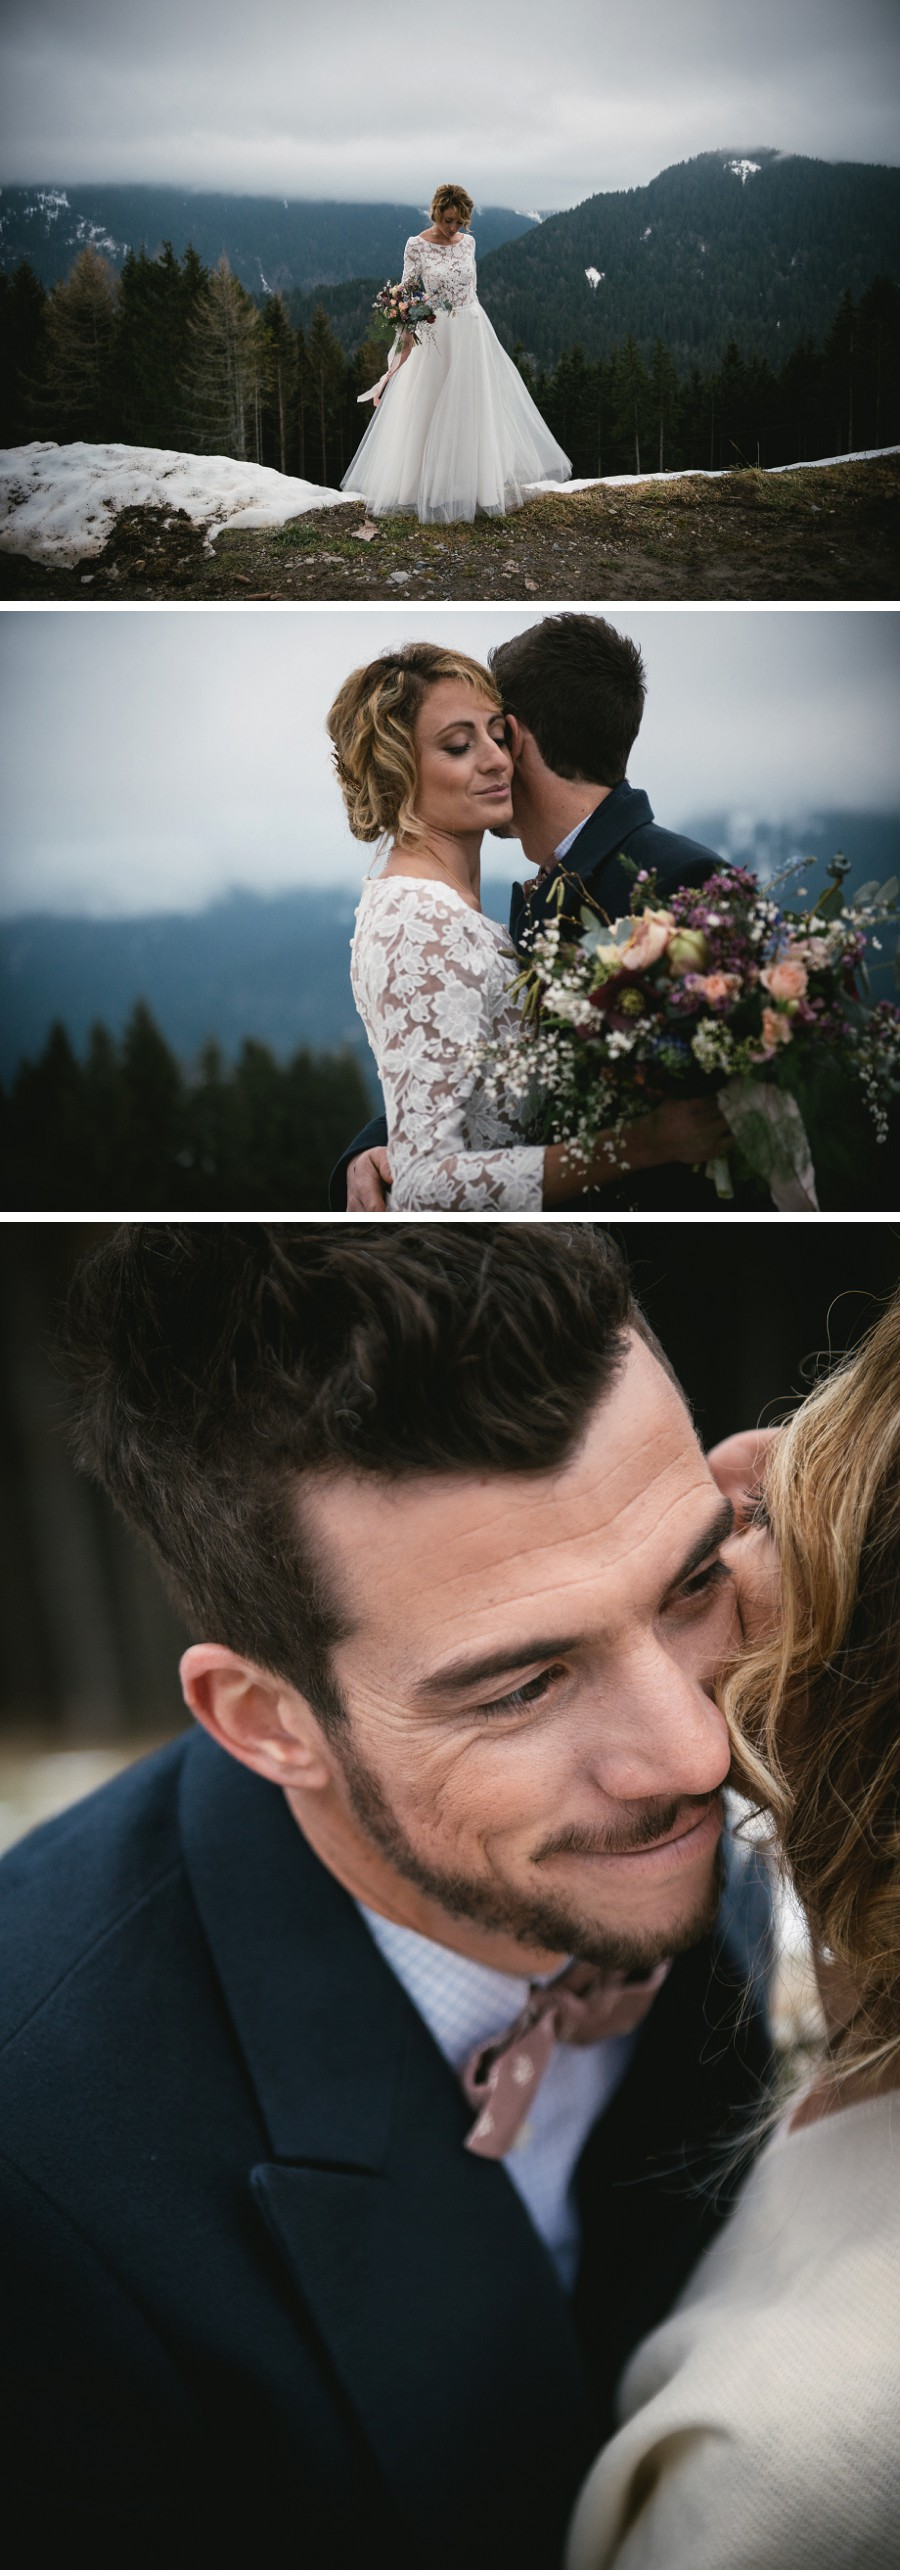 Bride and groom getting married on top of a mountain